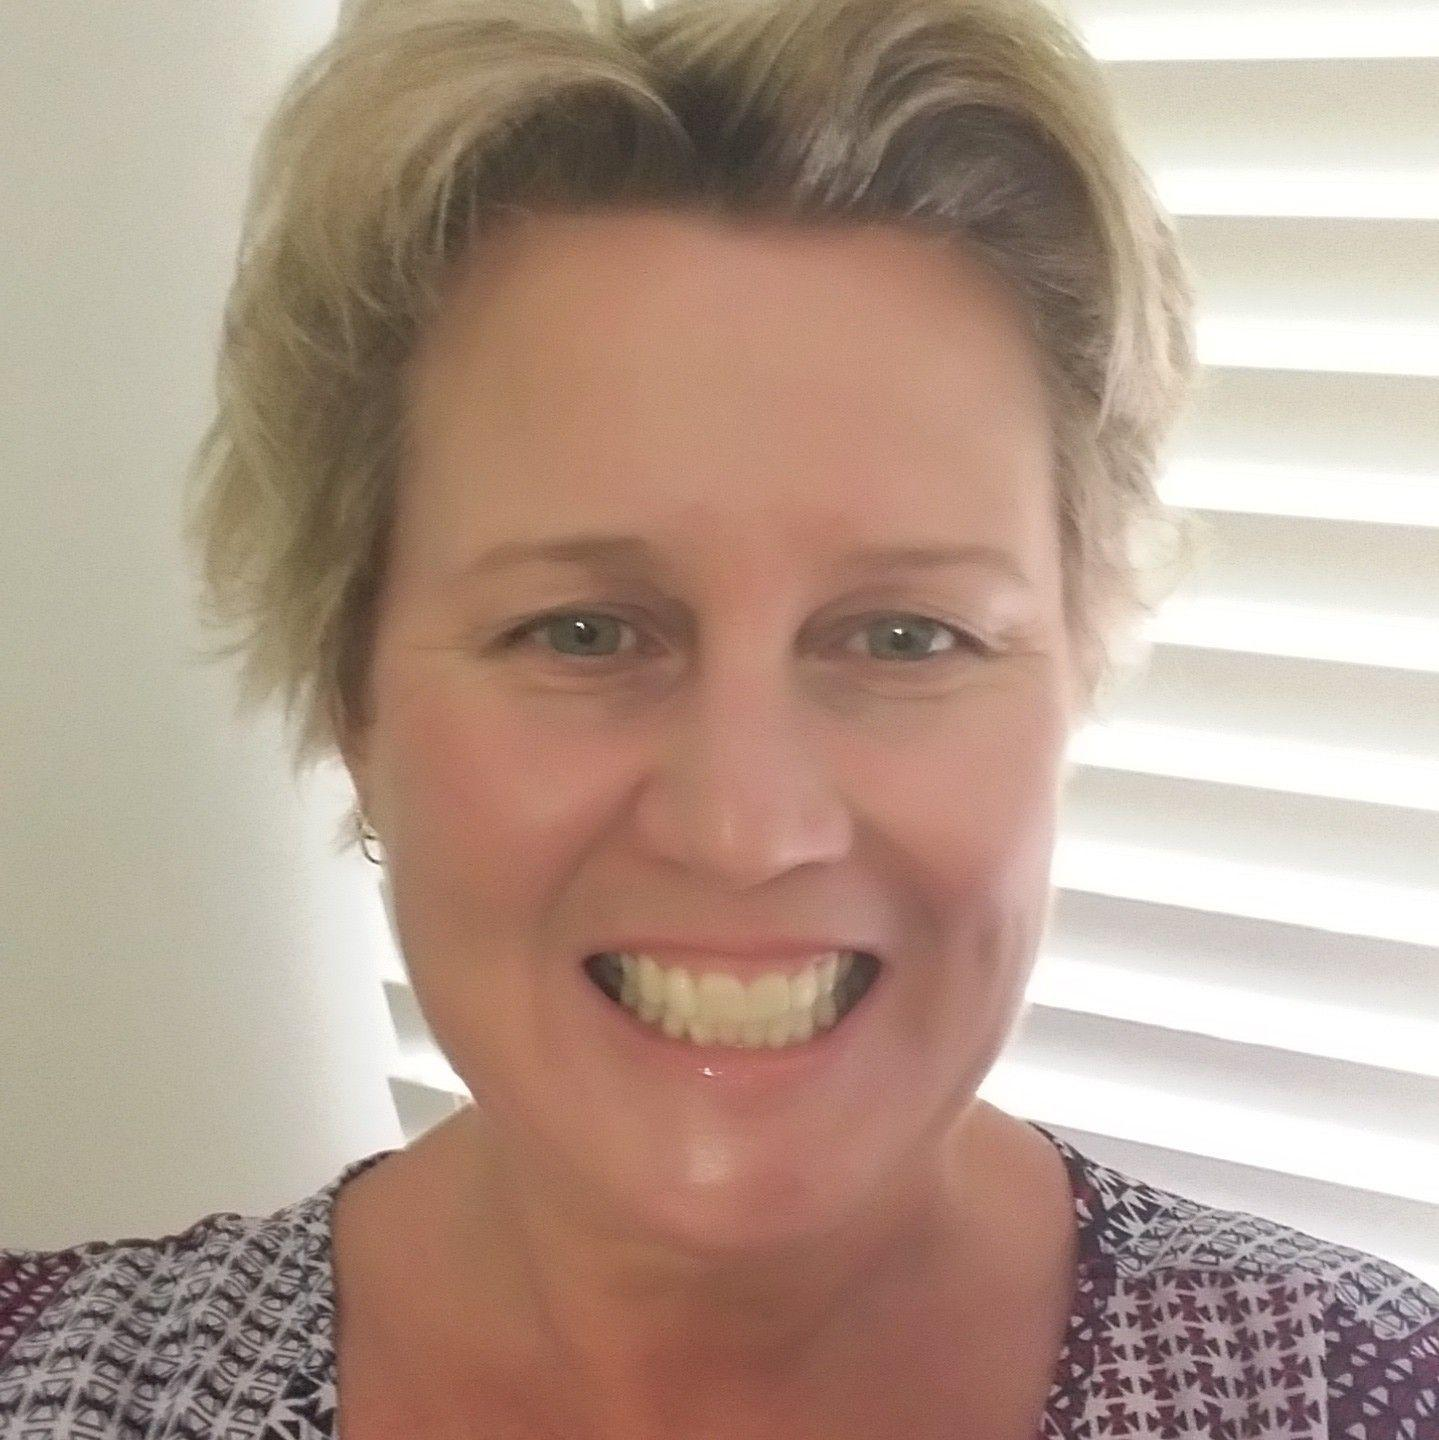 meet campbell hill singles Mary ann scrivano, 408/374-4183, singles@stlucy-campbell also publishes info about many other christian singles clubs and single parents meet sundays.